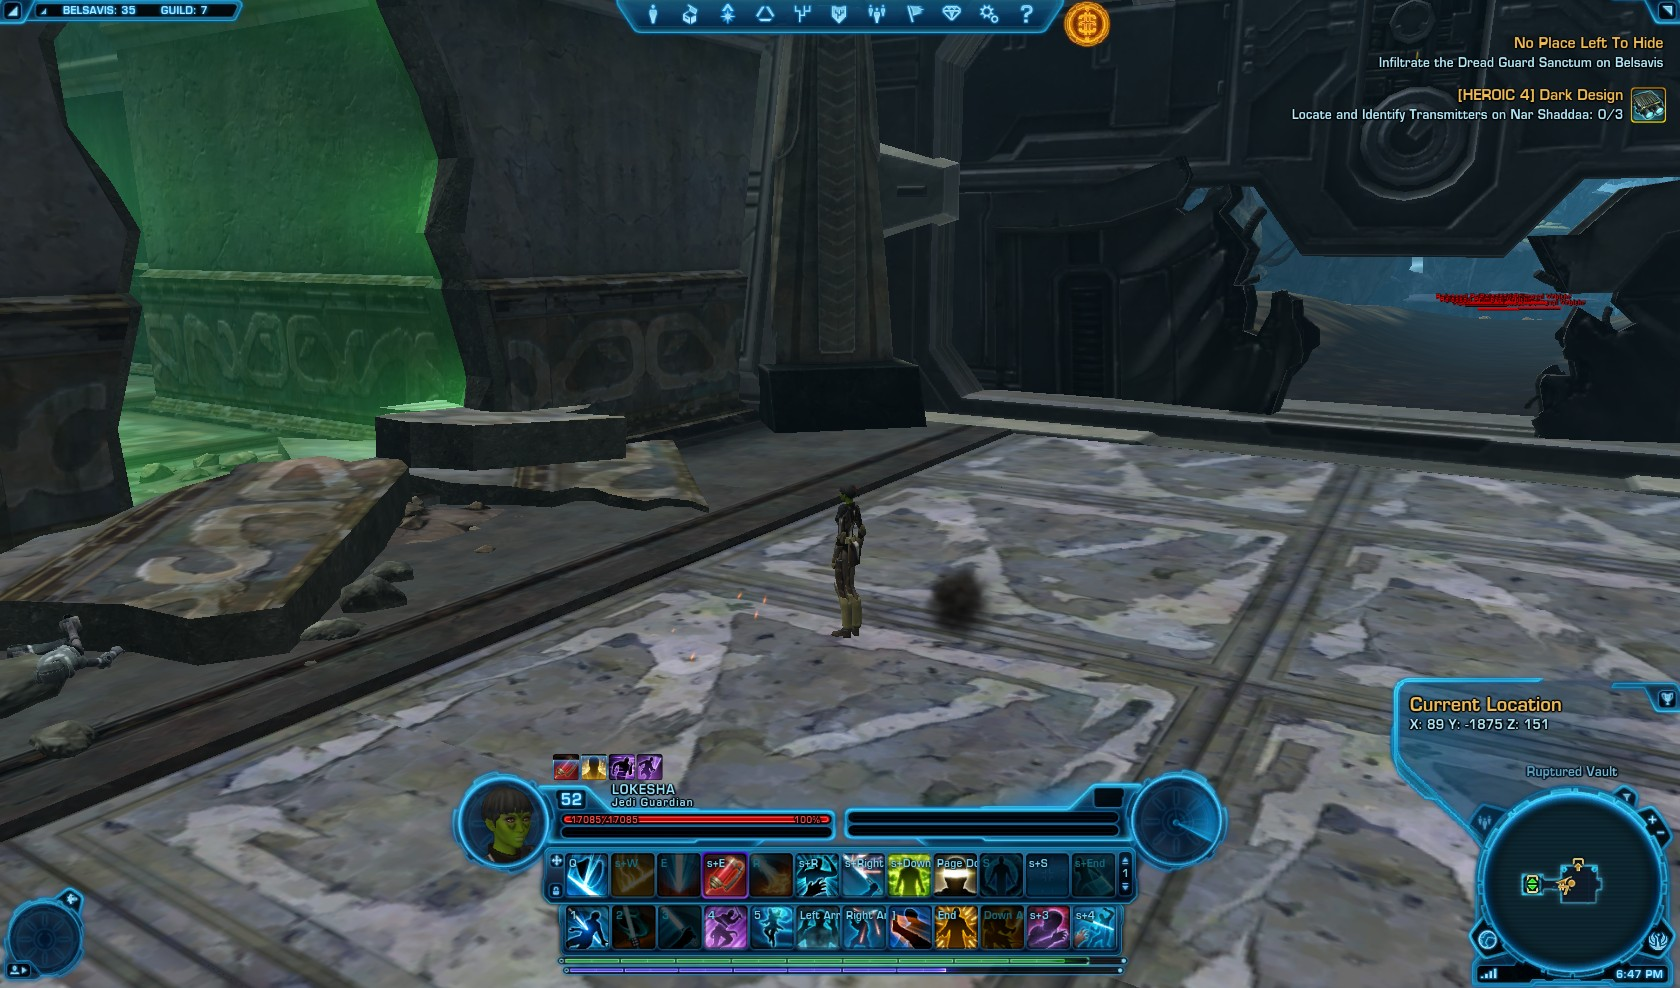 Swtor No Place Left to Hide